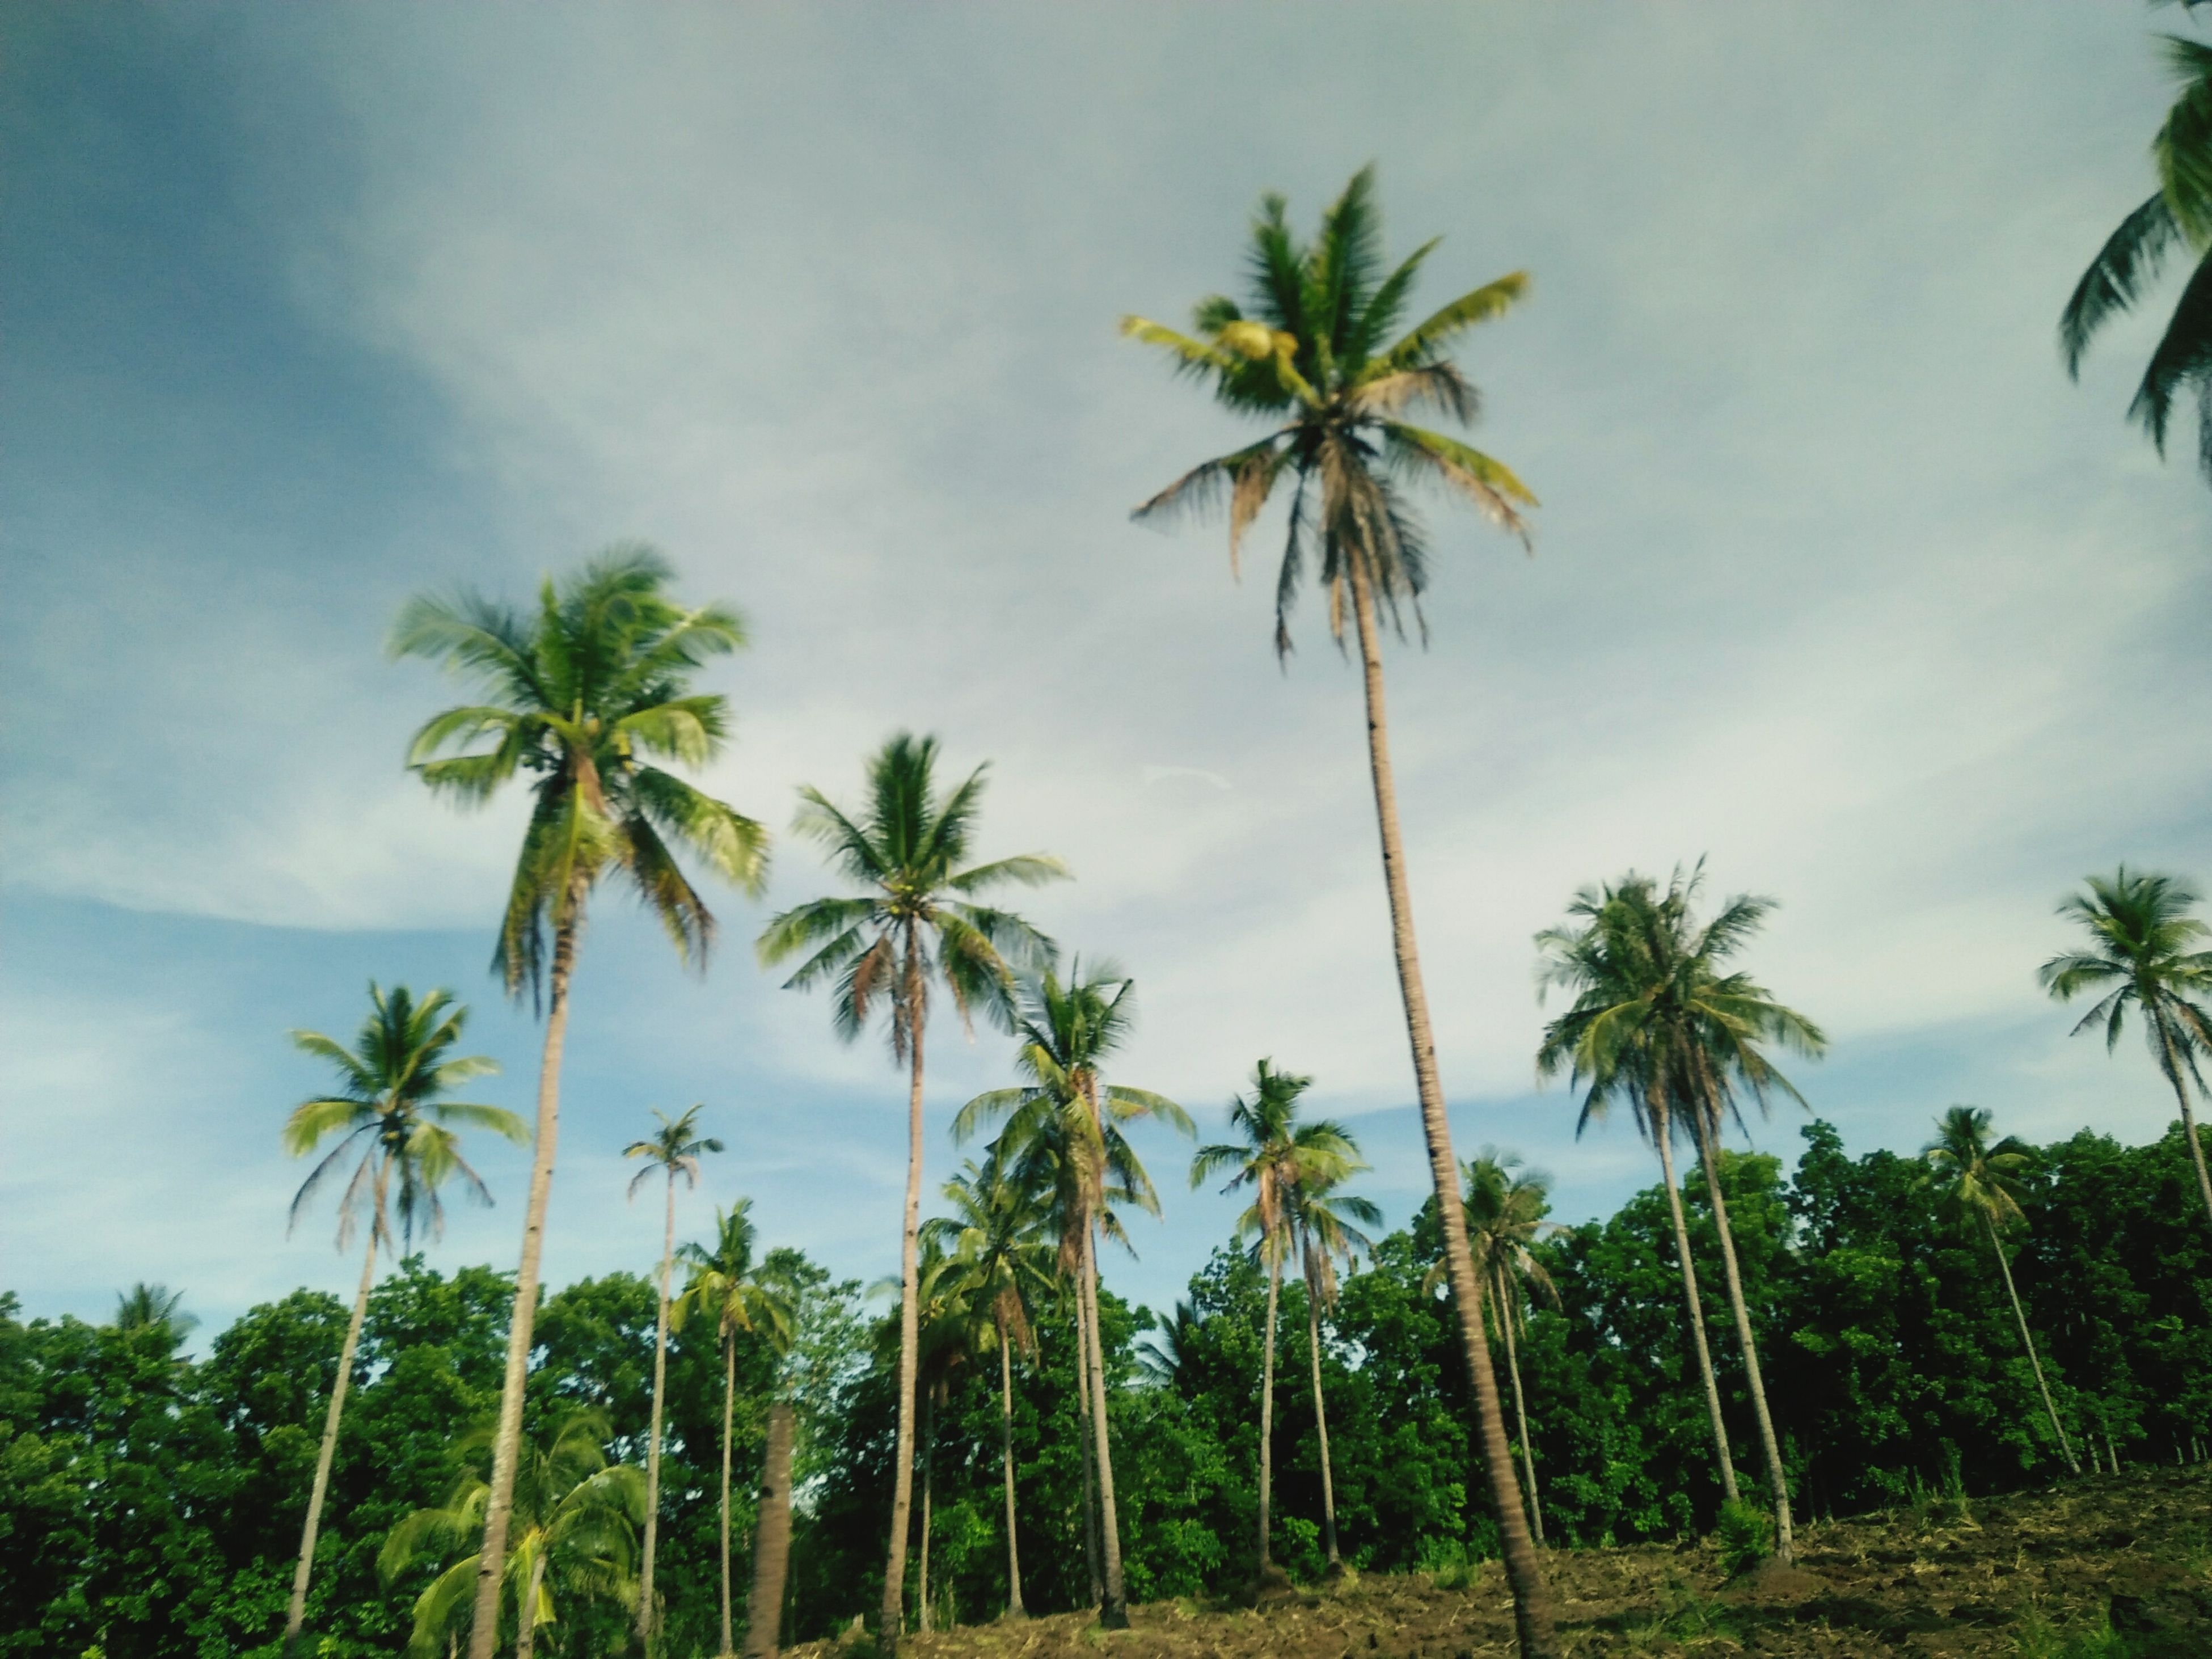 palm tree, tree, nature, sky, low angle view, tranquility, tree trunk, beauty in nature, no people, scenics, growth, day, outdoors